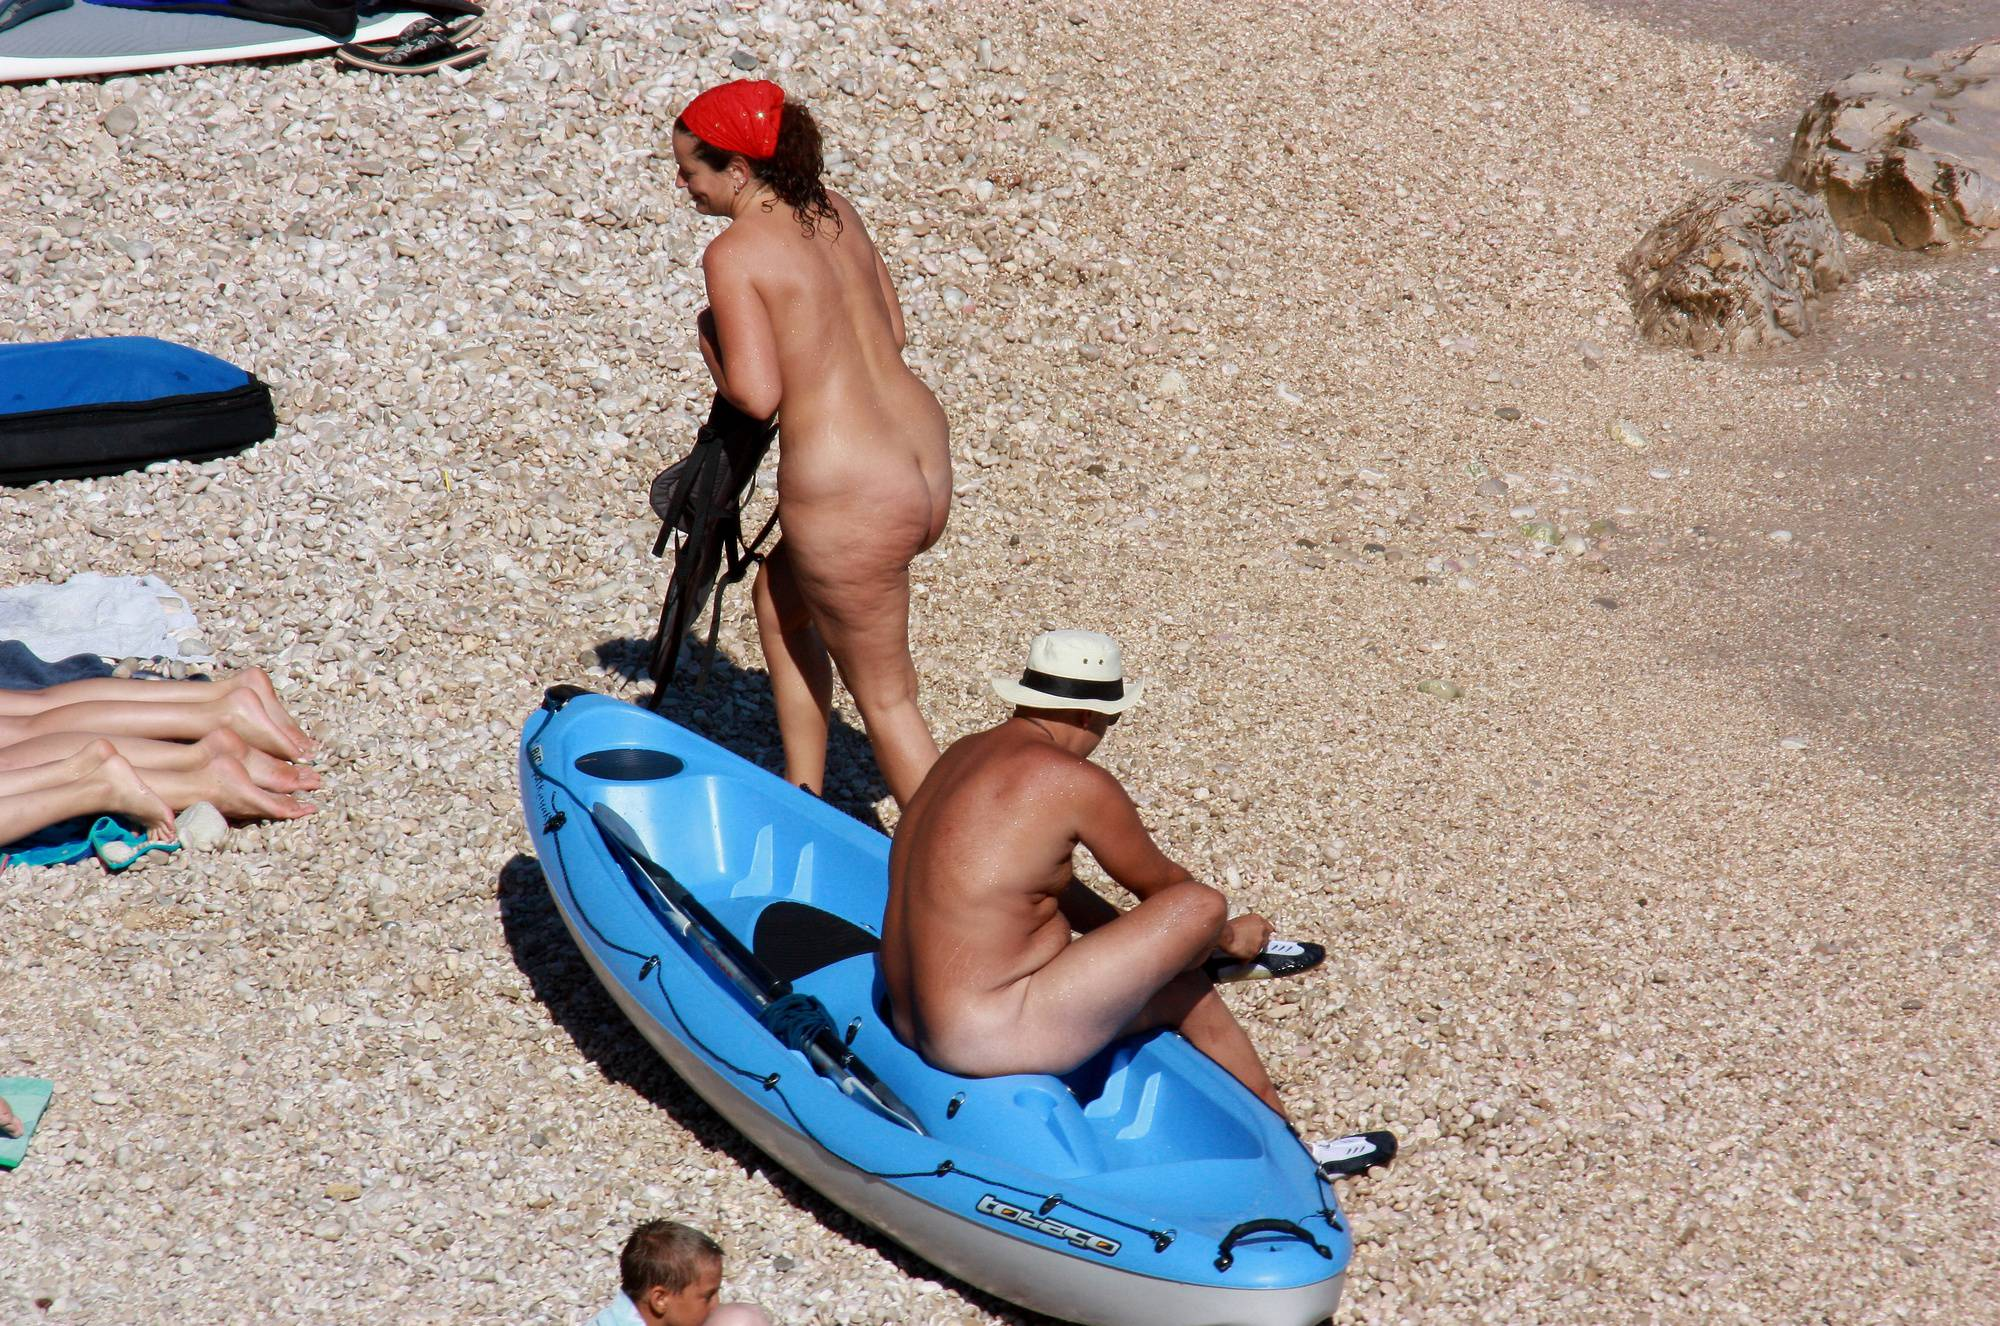 Pure Nudism Photos Get In Waters for Boating - 2